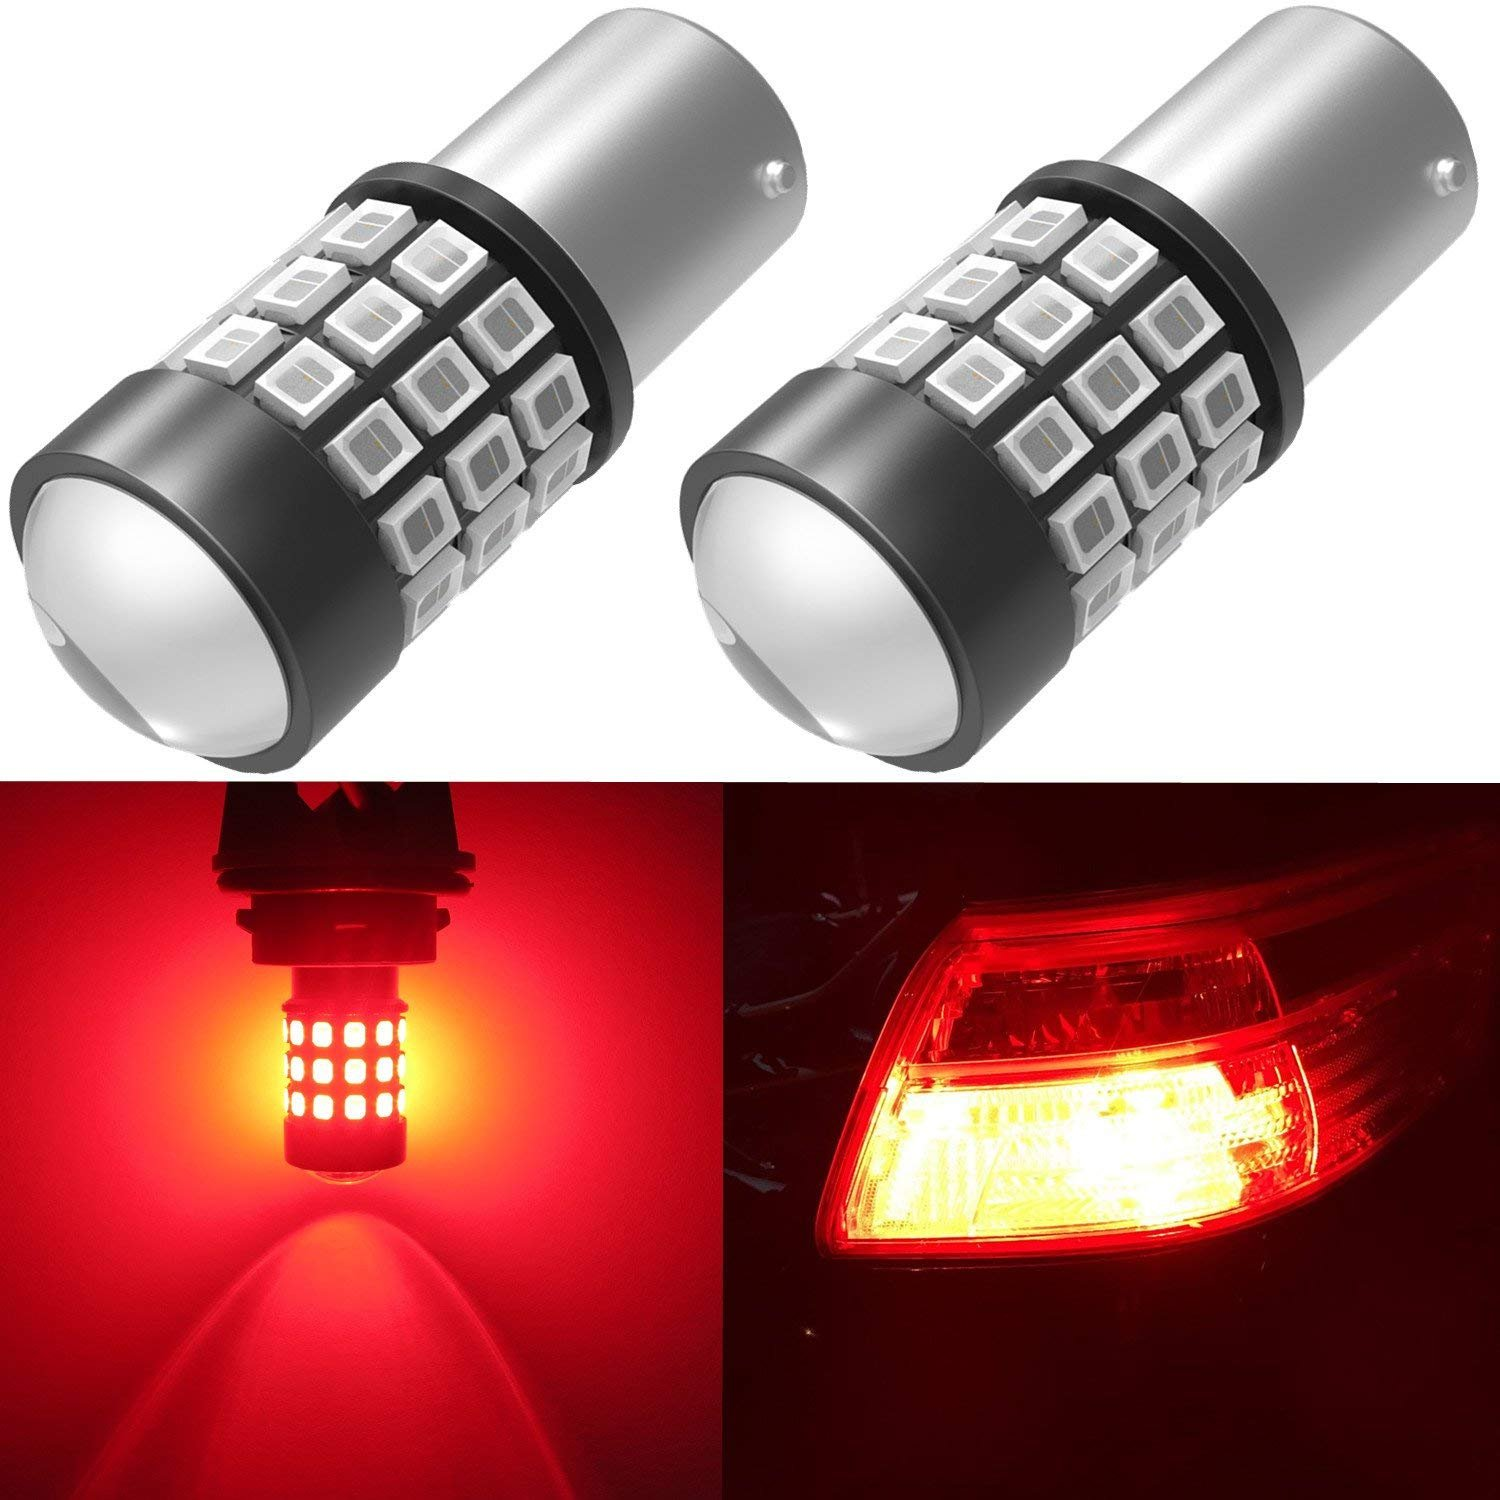 Alla Lighting BAY15D 7528 1157 LED Strobe Brake Lights Bulbs Super Bright 2357 2057 1157 Flashing Strobe LED Bulbs High Power 1157 Strobe Brake Stop Light Bulbs, Brilliant Pure Red (Set of 2)